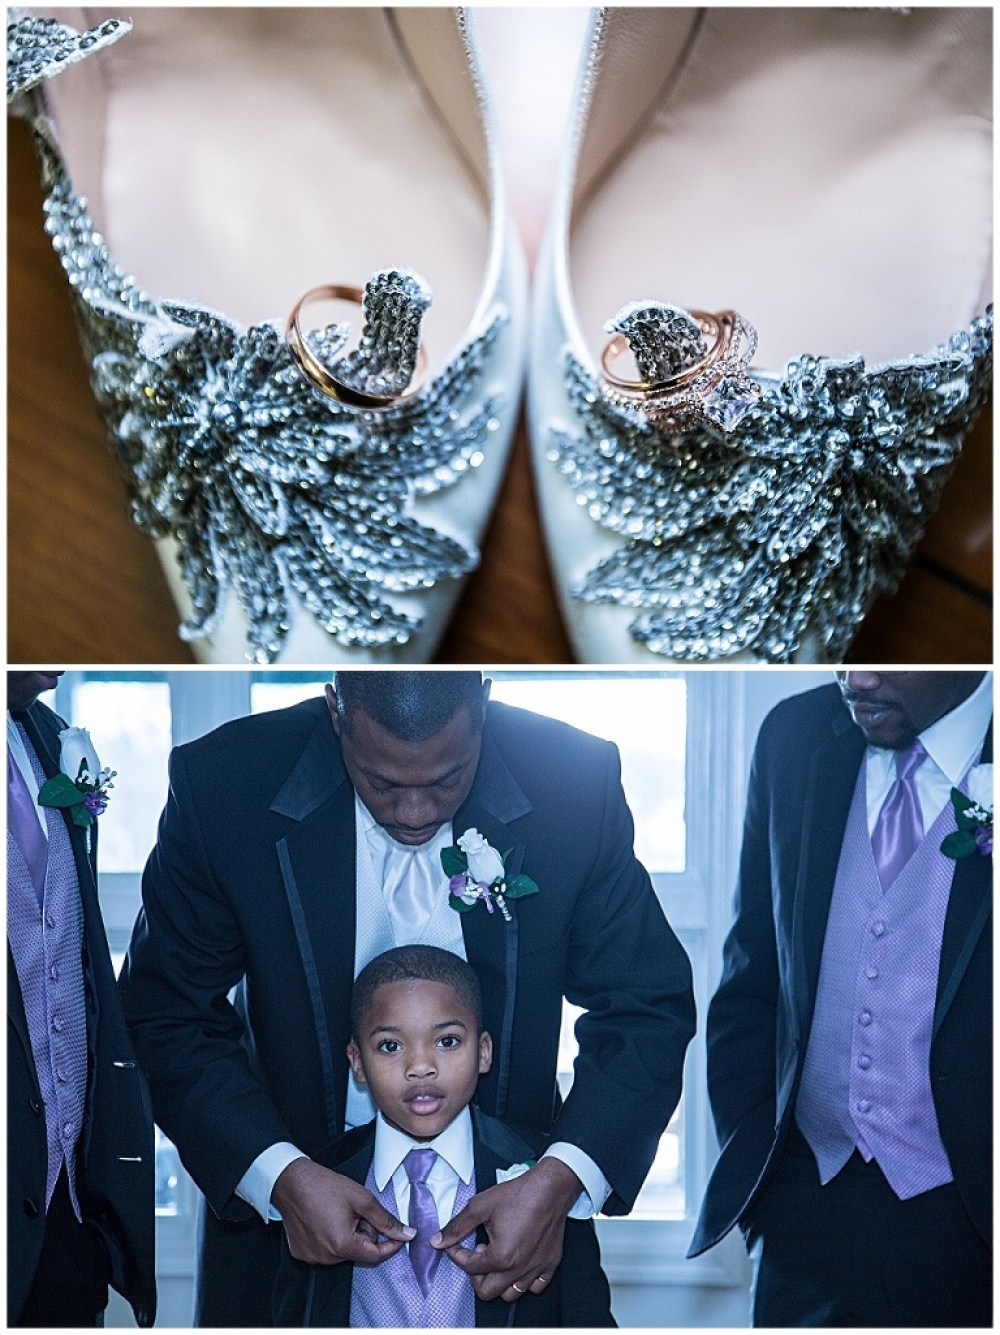 Alisa & Chris' New Years Eve Wedding! | Patuxent Greens Country Club, Laurel Maryland 2013-12-31_0004